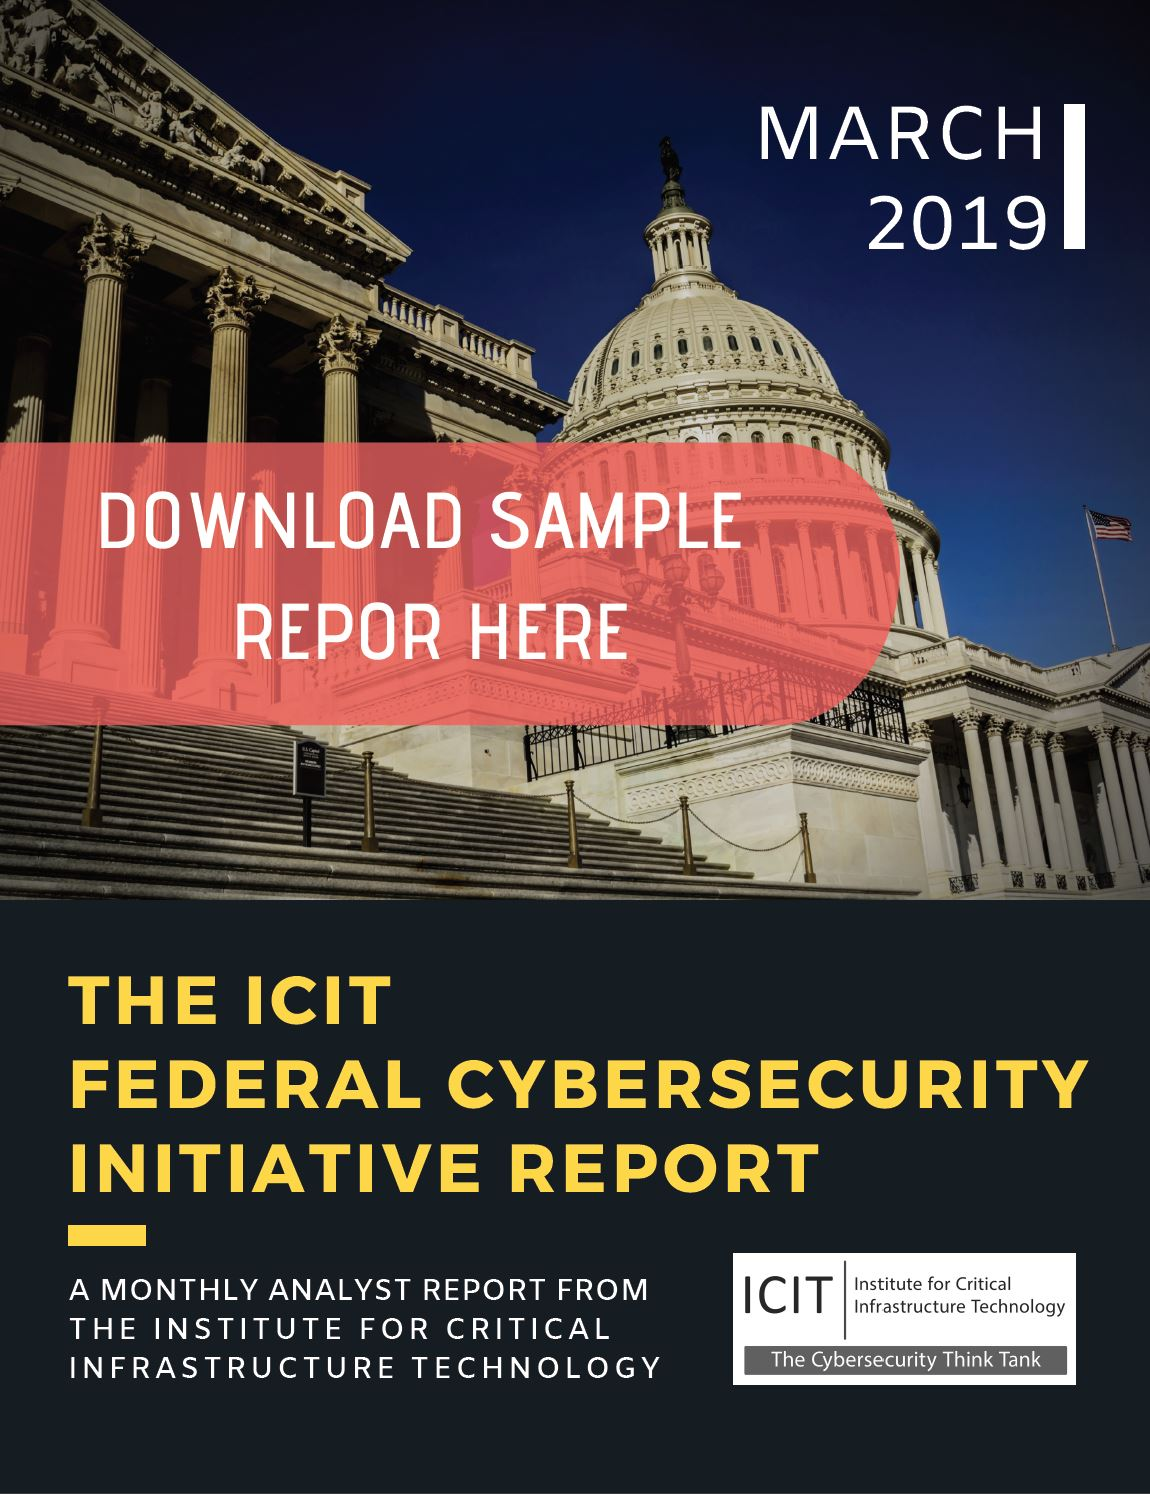 ICIT Federal Cyber Initiatives Report